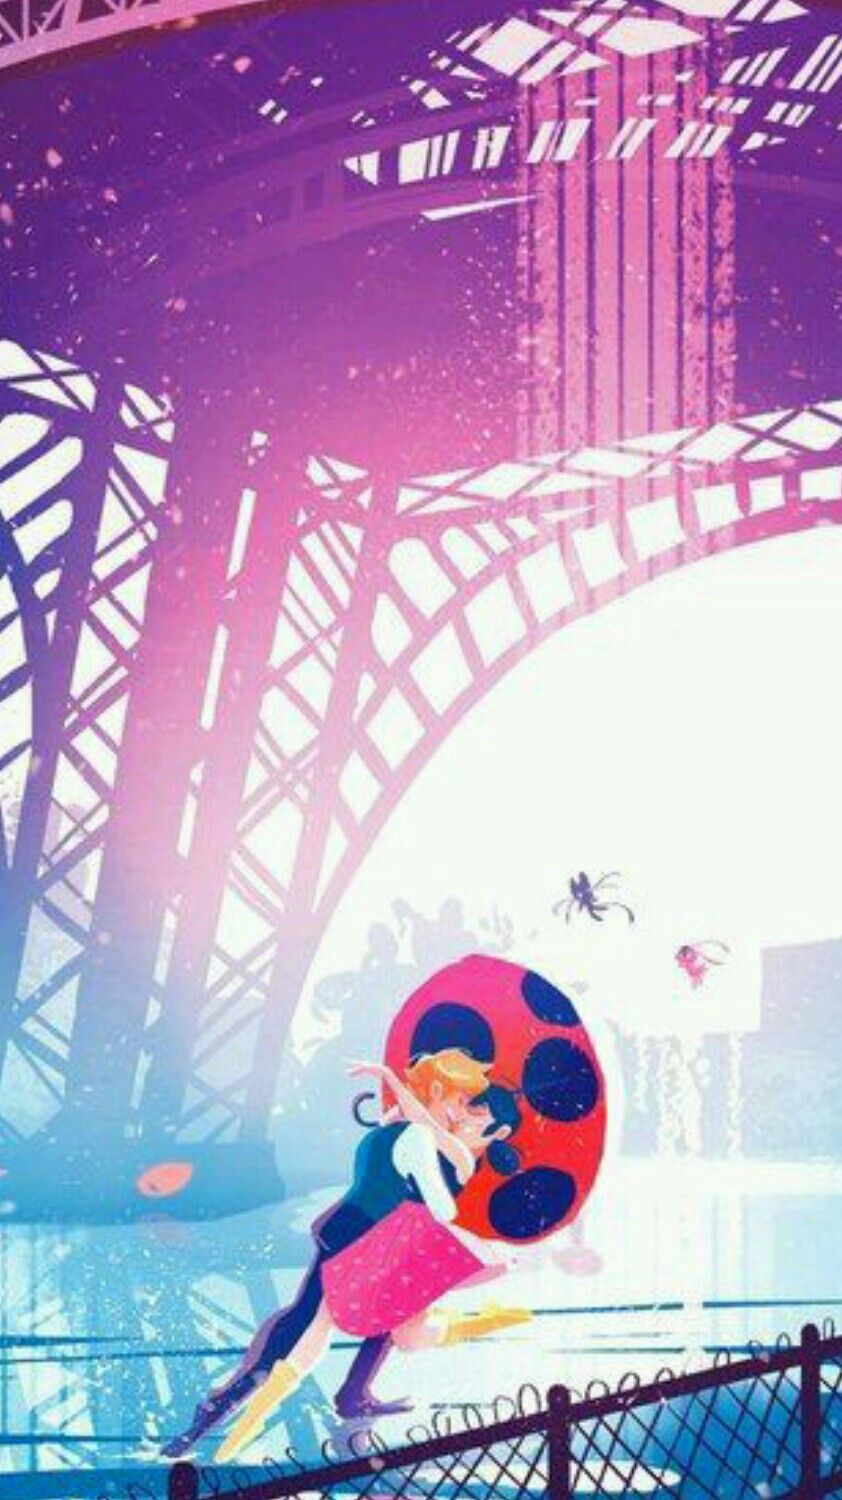 Pin By Art Quill On Miraculous Ladybug Iphone Wallpapers Miraculous Ladybug Wallpaper Miraculous Ladybug Ladybug Wallpaper